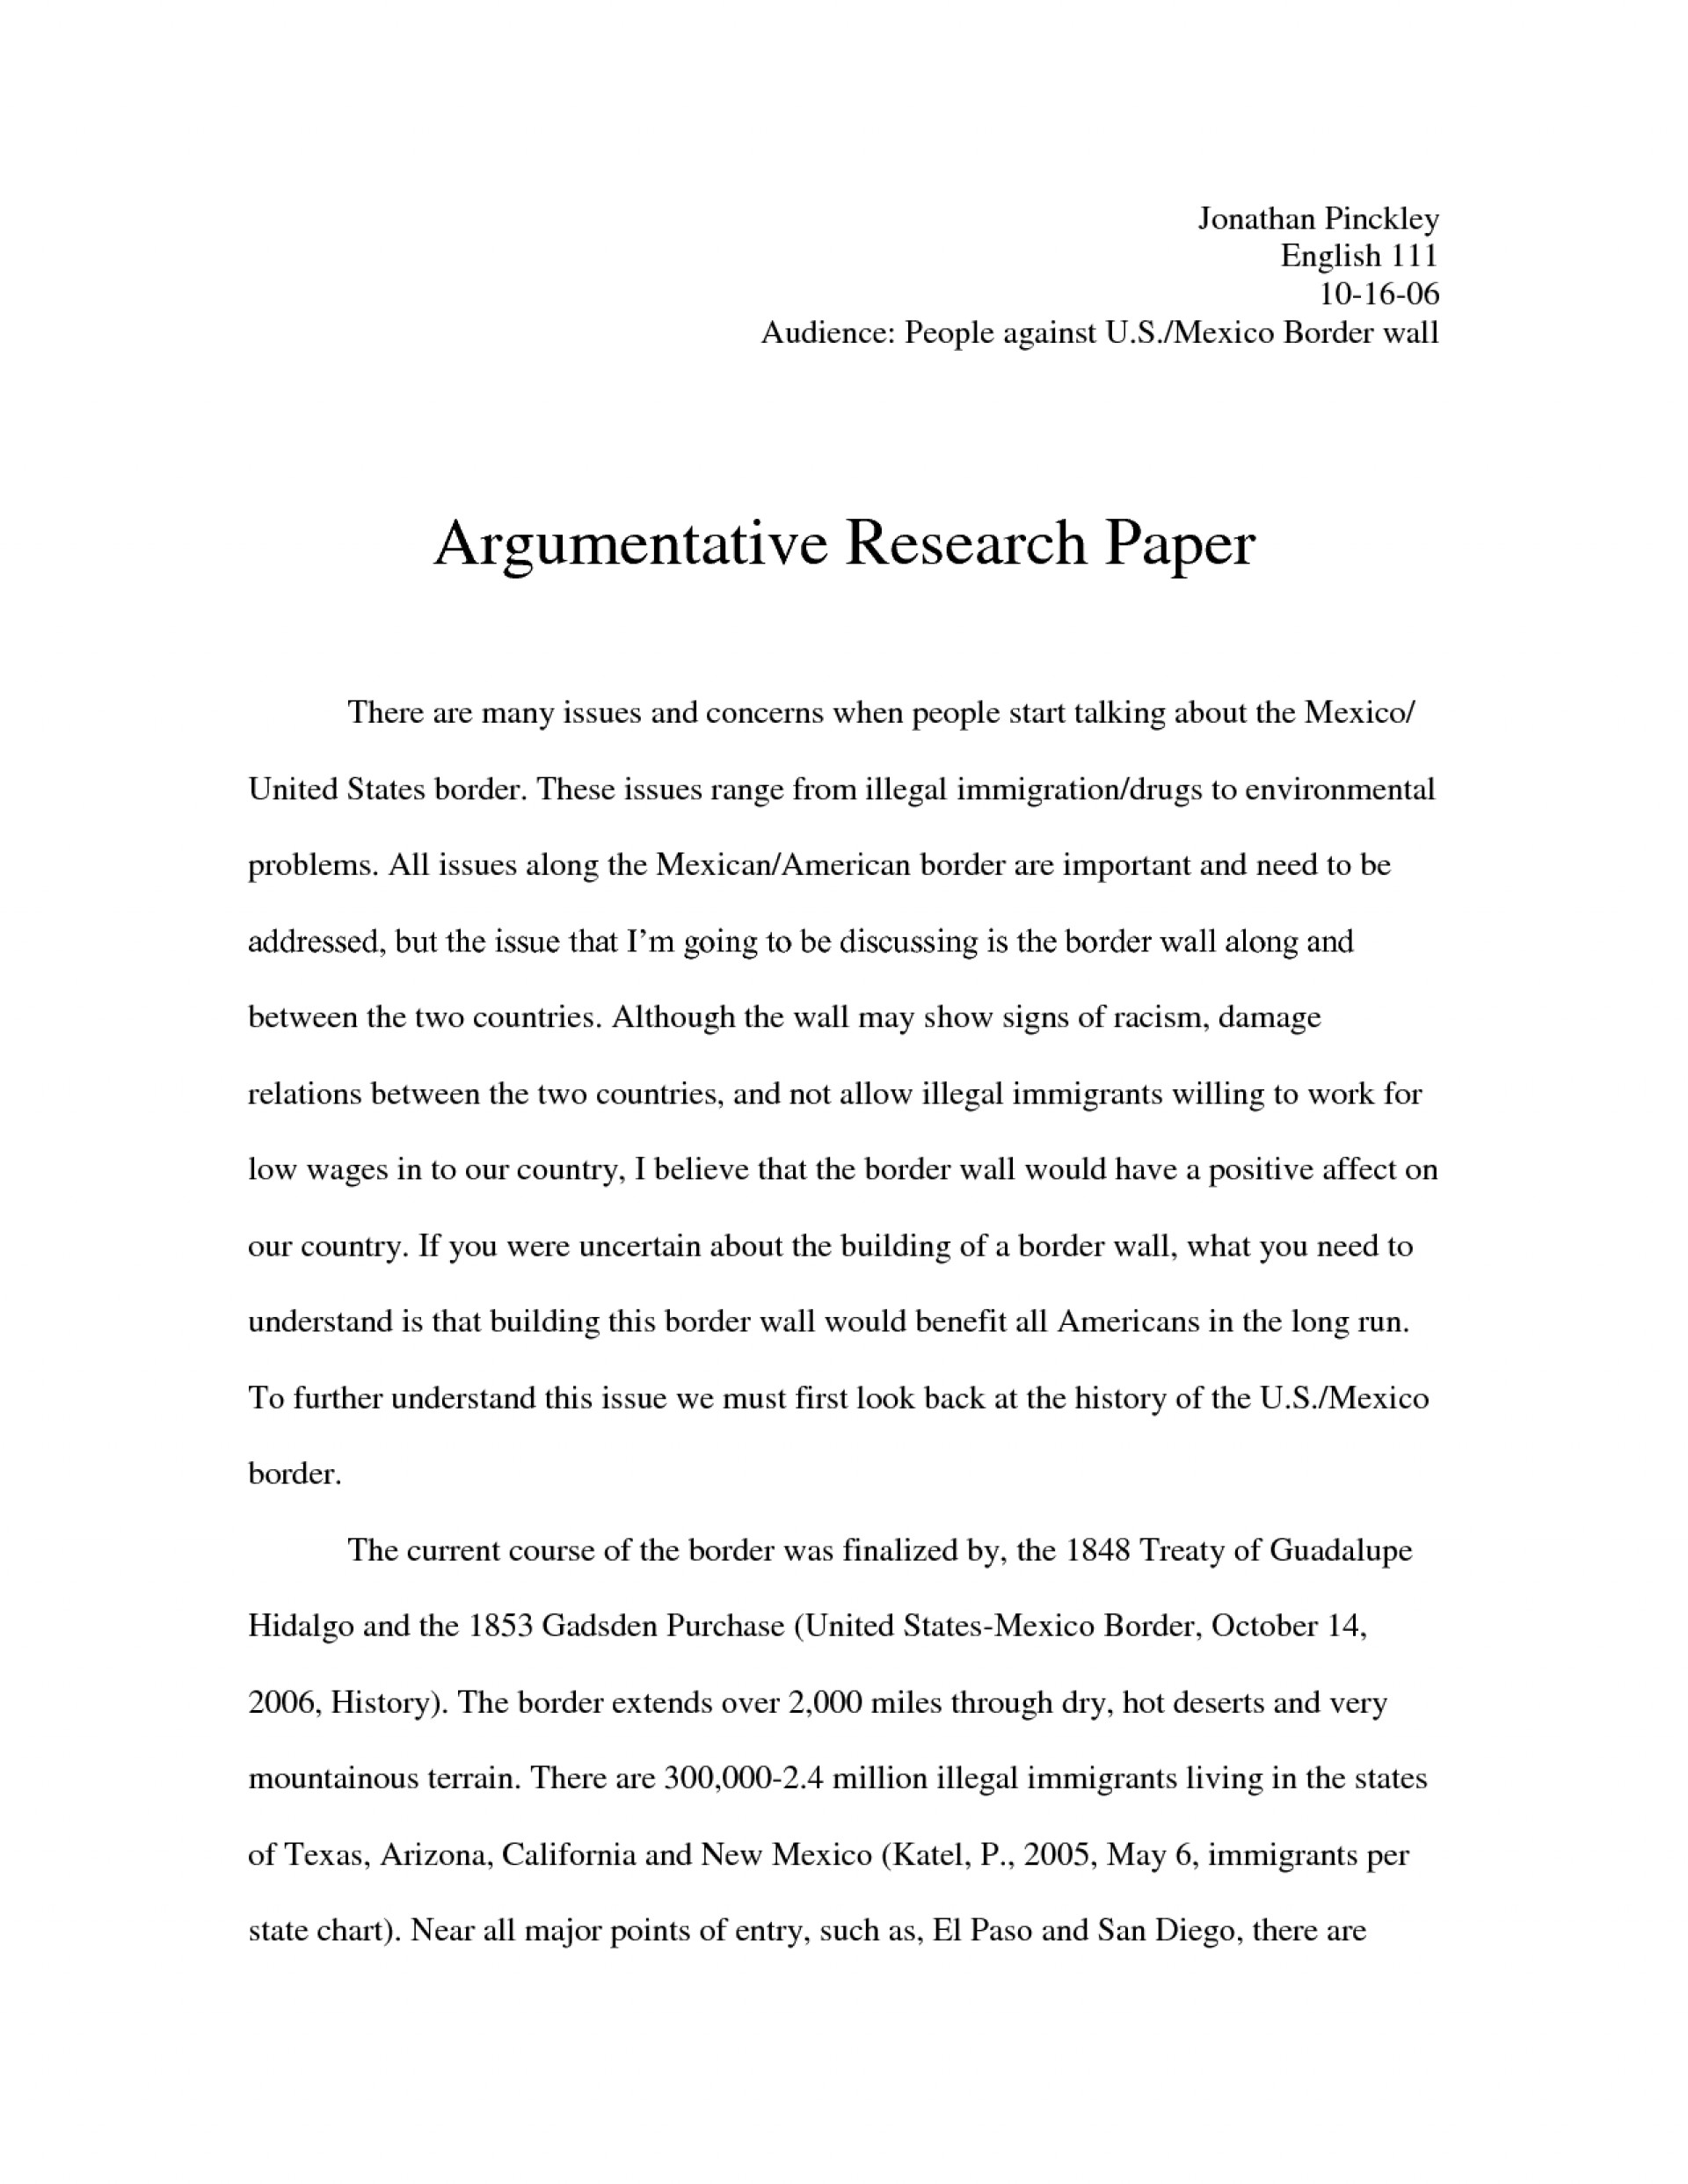 016 Research Paper Uncategorized Debate20y Argumentative Thesis High School Topics Sentence Starters Outline Worksheet Structure20 For Striking An Medical Easy Essay 1920